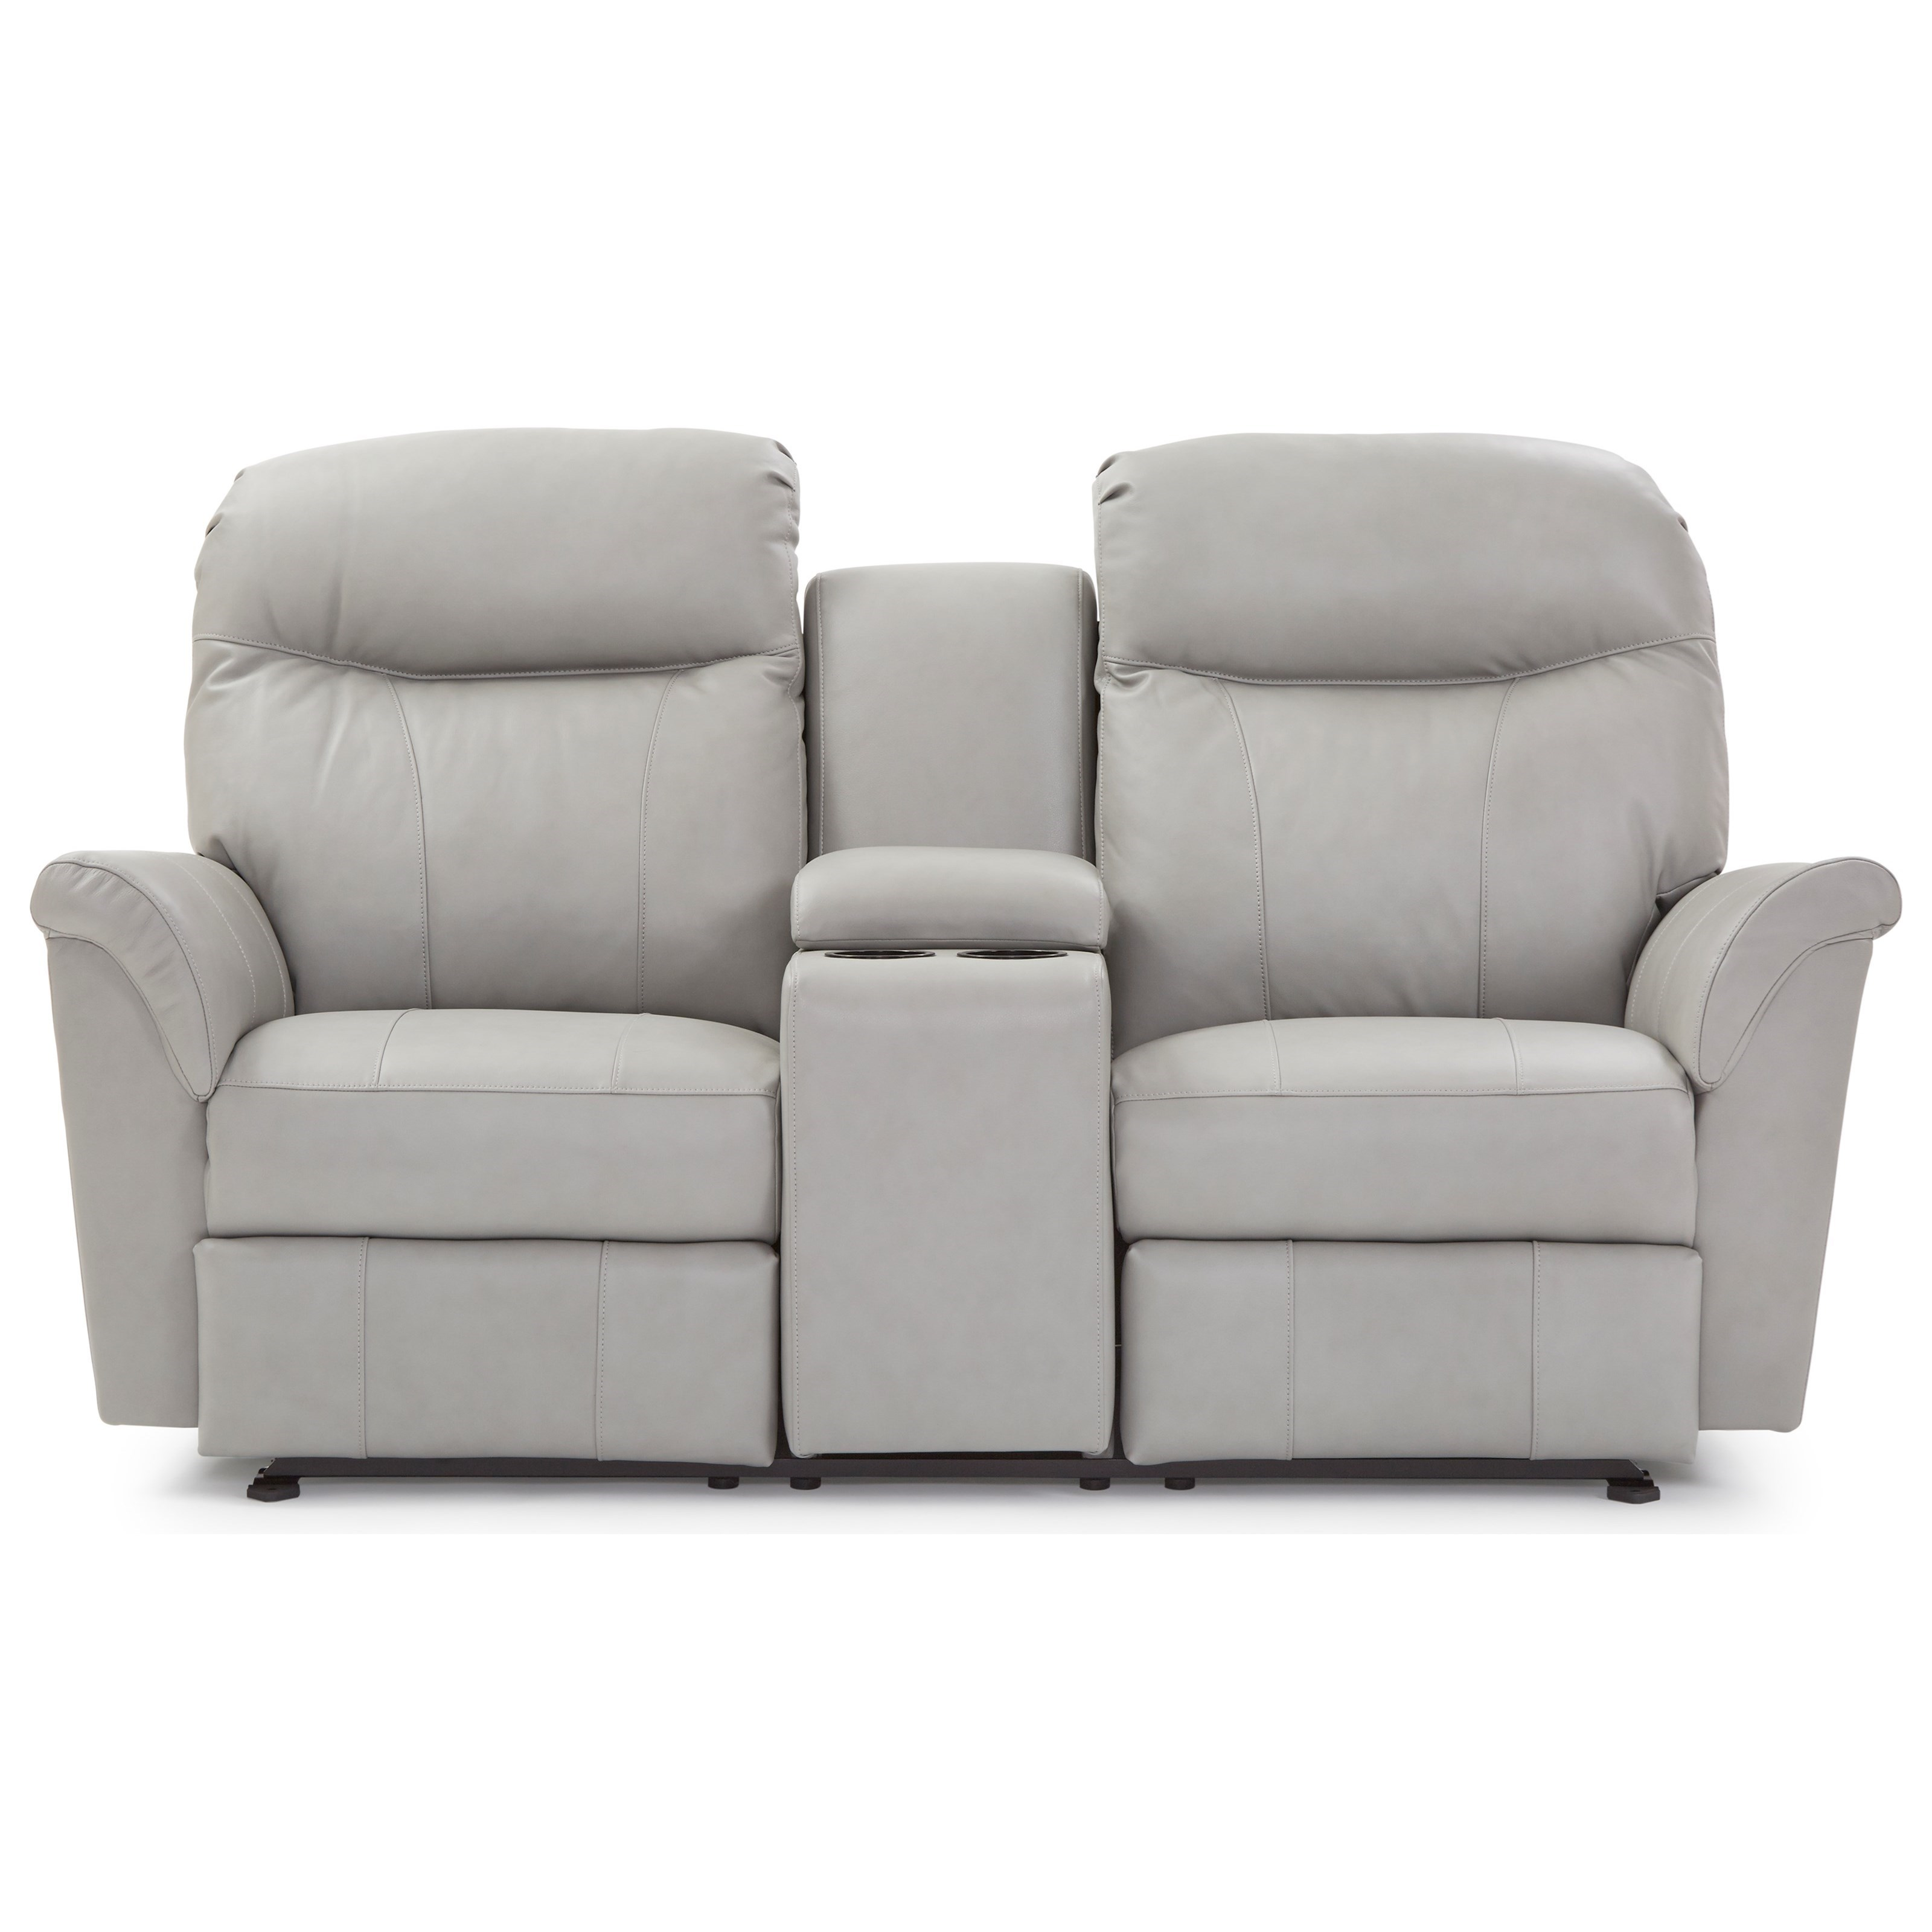 Caitlin Rocking Reclining Console Loveseat by Best Home Furnishings at Best Home Furnishings